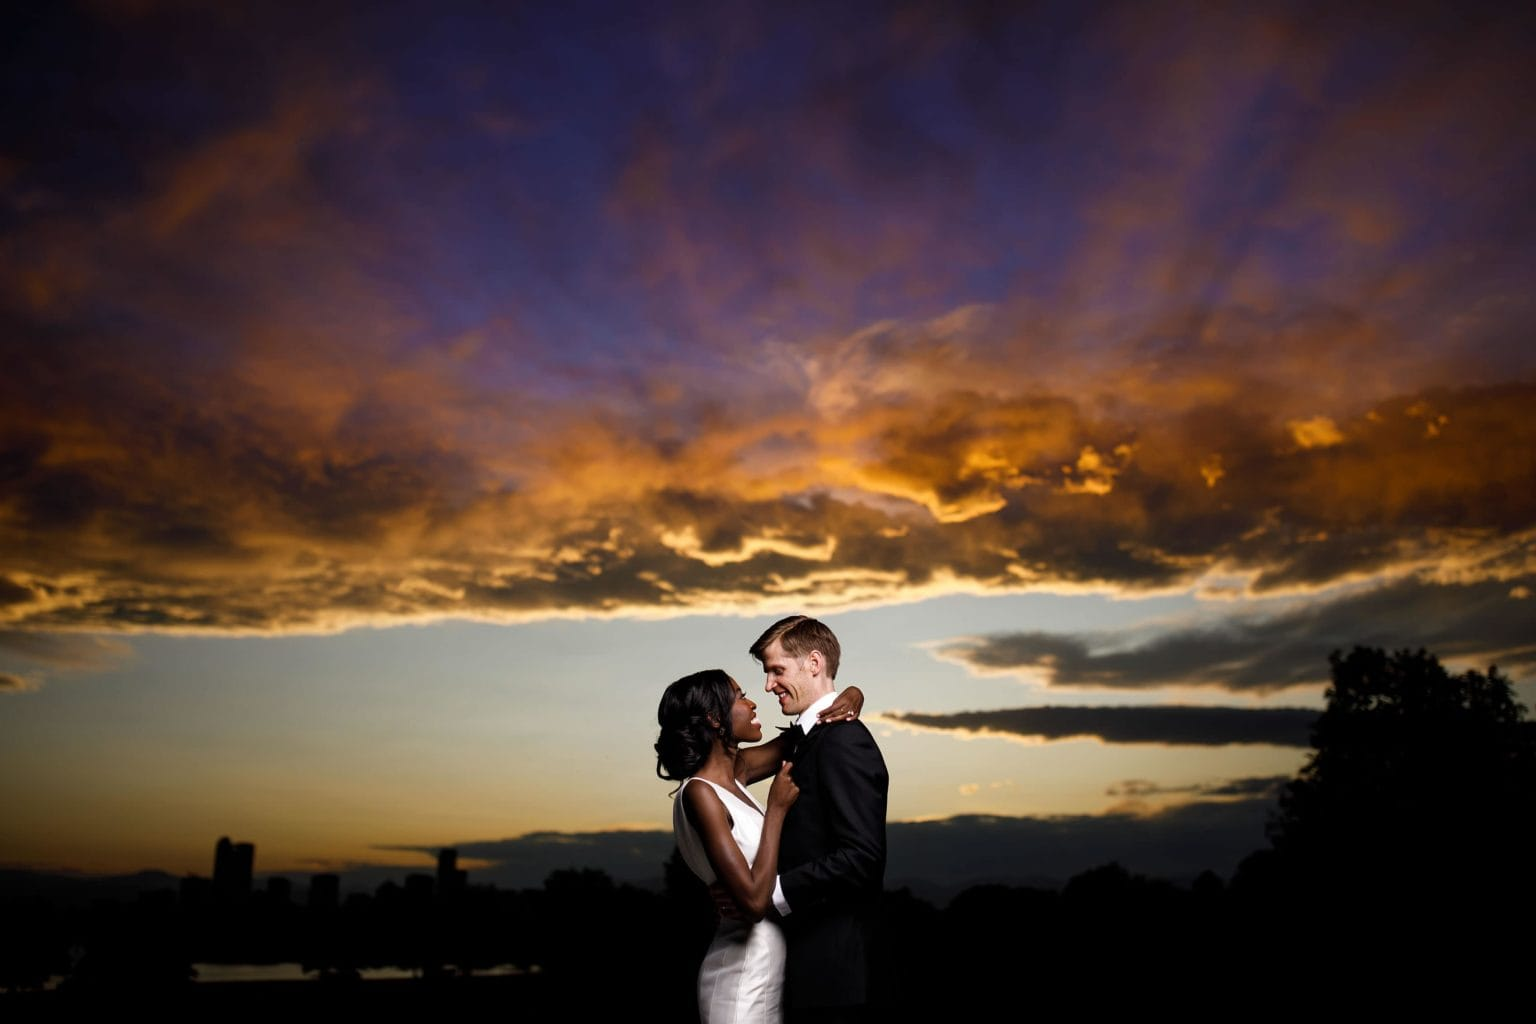 A couple pose together under a Denver sunset during their wedding day